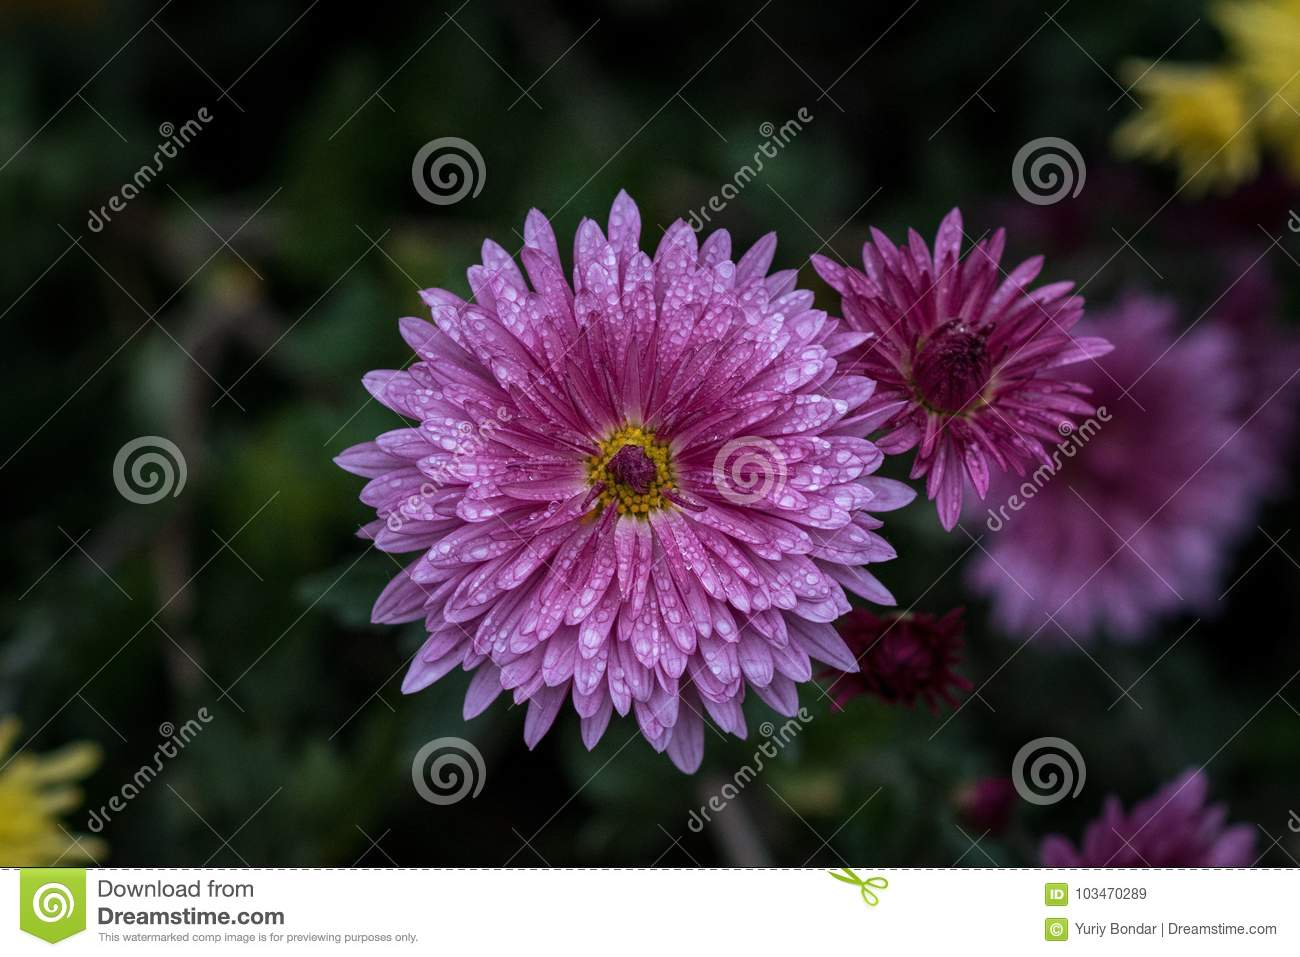 Chrysanthemum herbaceous perennials and annuals of the family royalty free stock photo izmirmasajfo